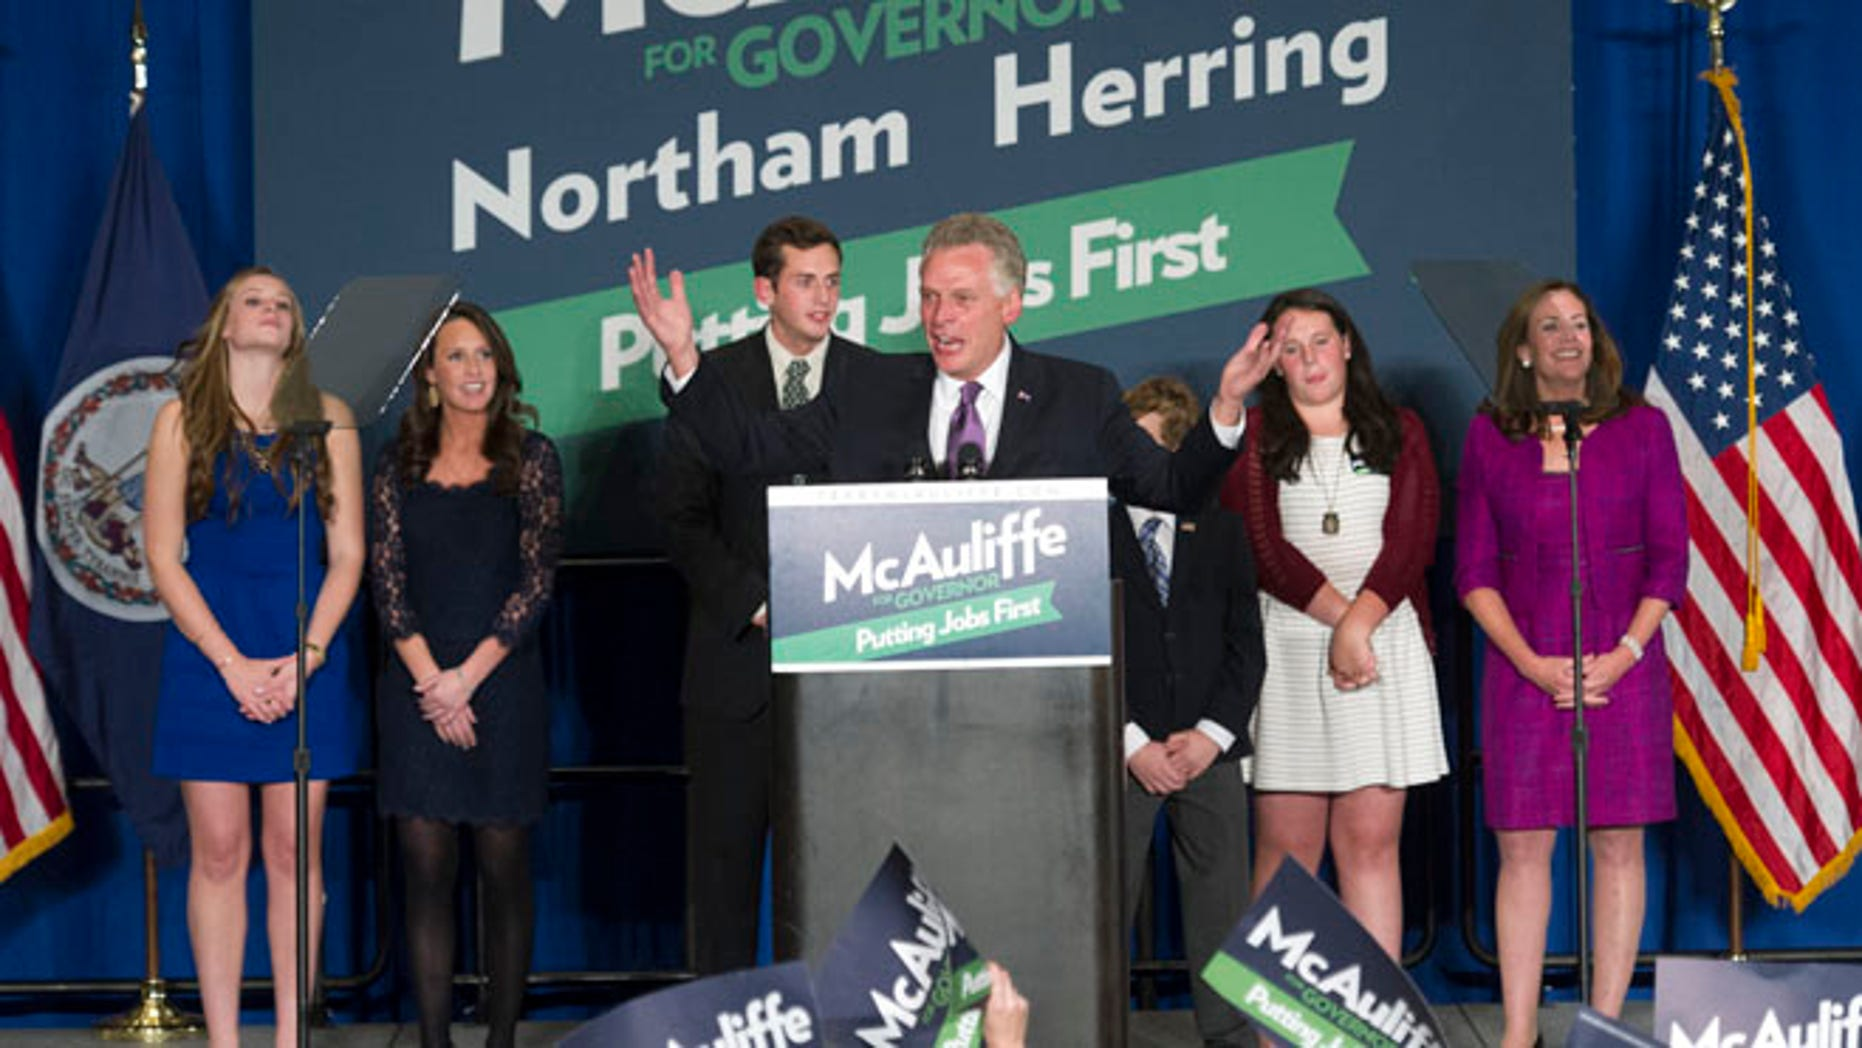 Democratic Virginia Gov.-elect Terry McAuliffe with his family during a party in Tysons Corner, Va., Tuesday, Nov. 5, 2013.